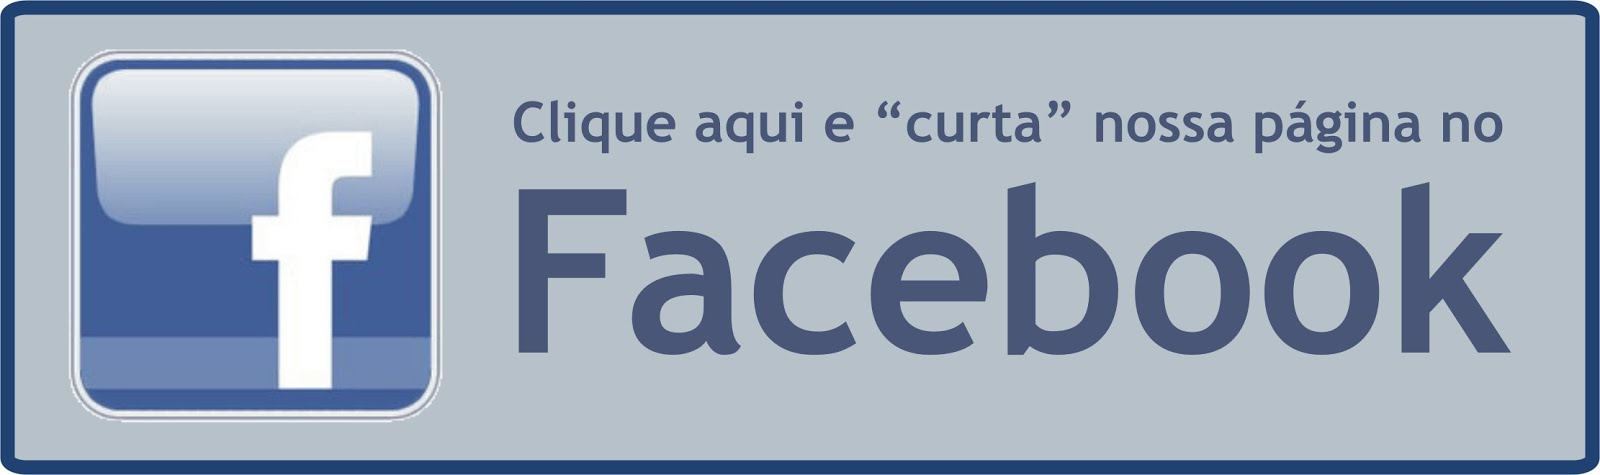 SEJA NOSSO SEGUIDOR NO FACEBOOK!